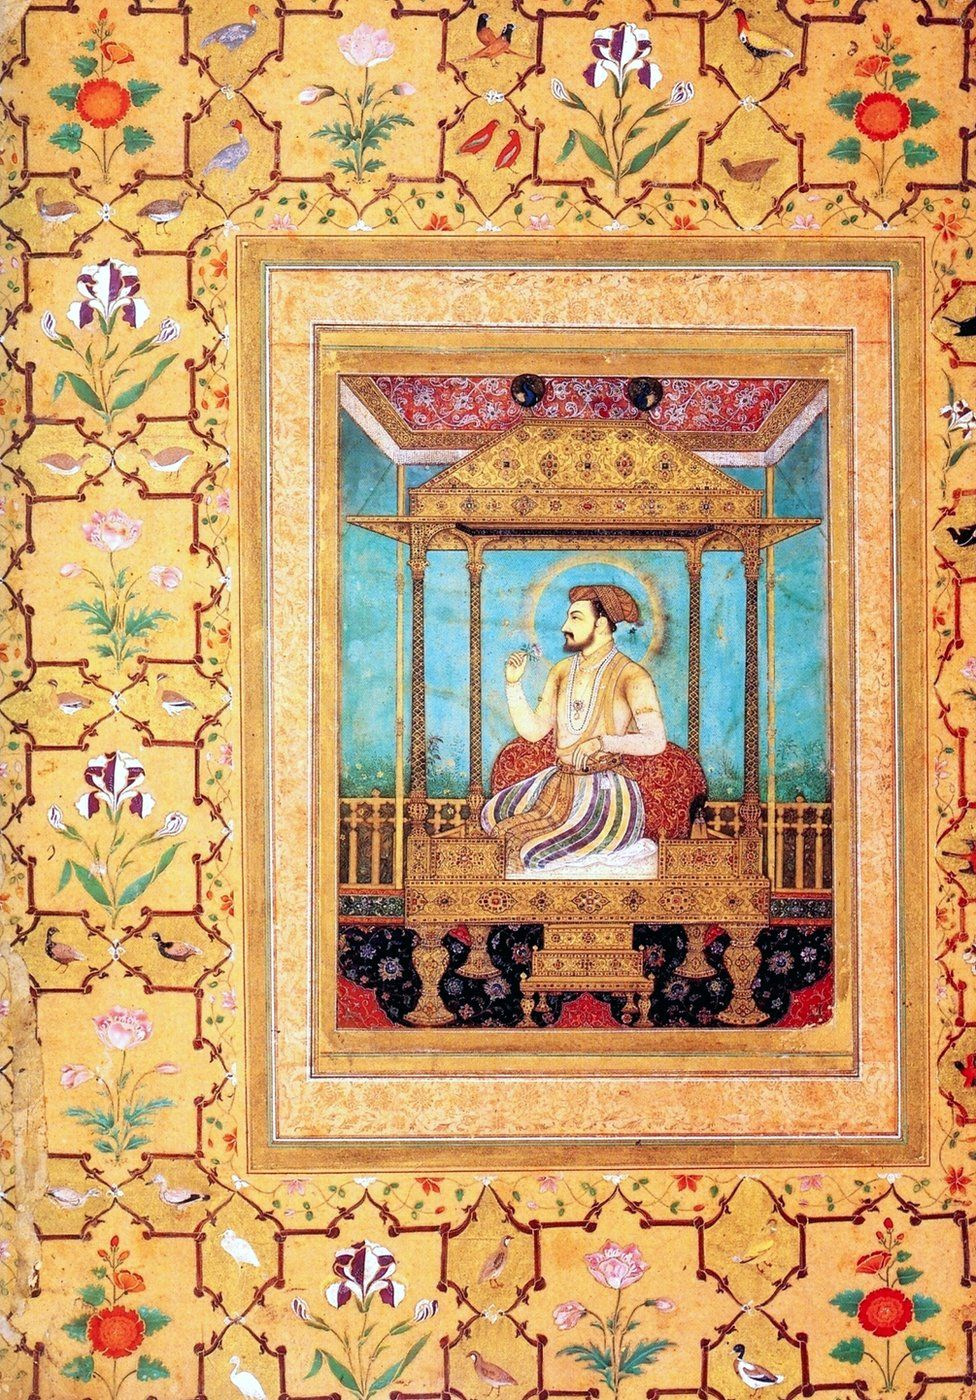 Shah Jahan seated on his richly jewelled Peacock Throne.